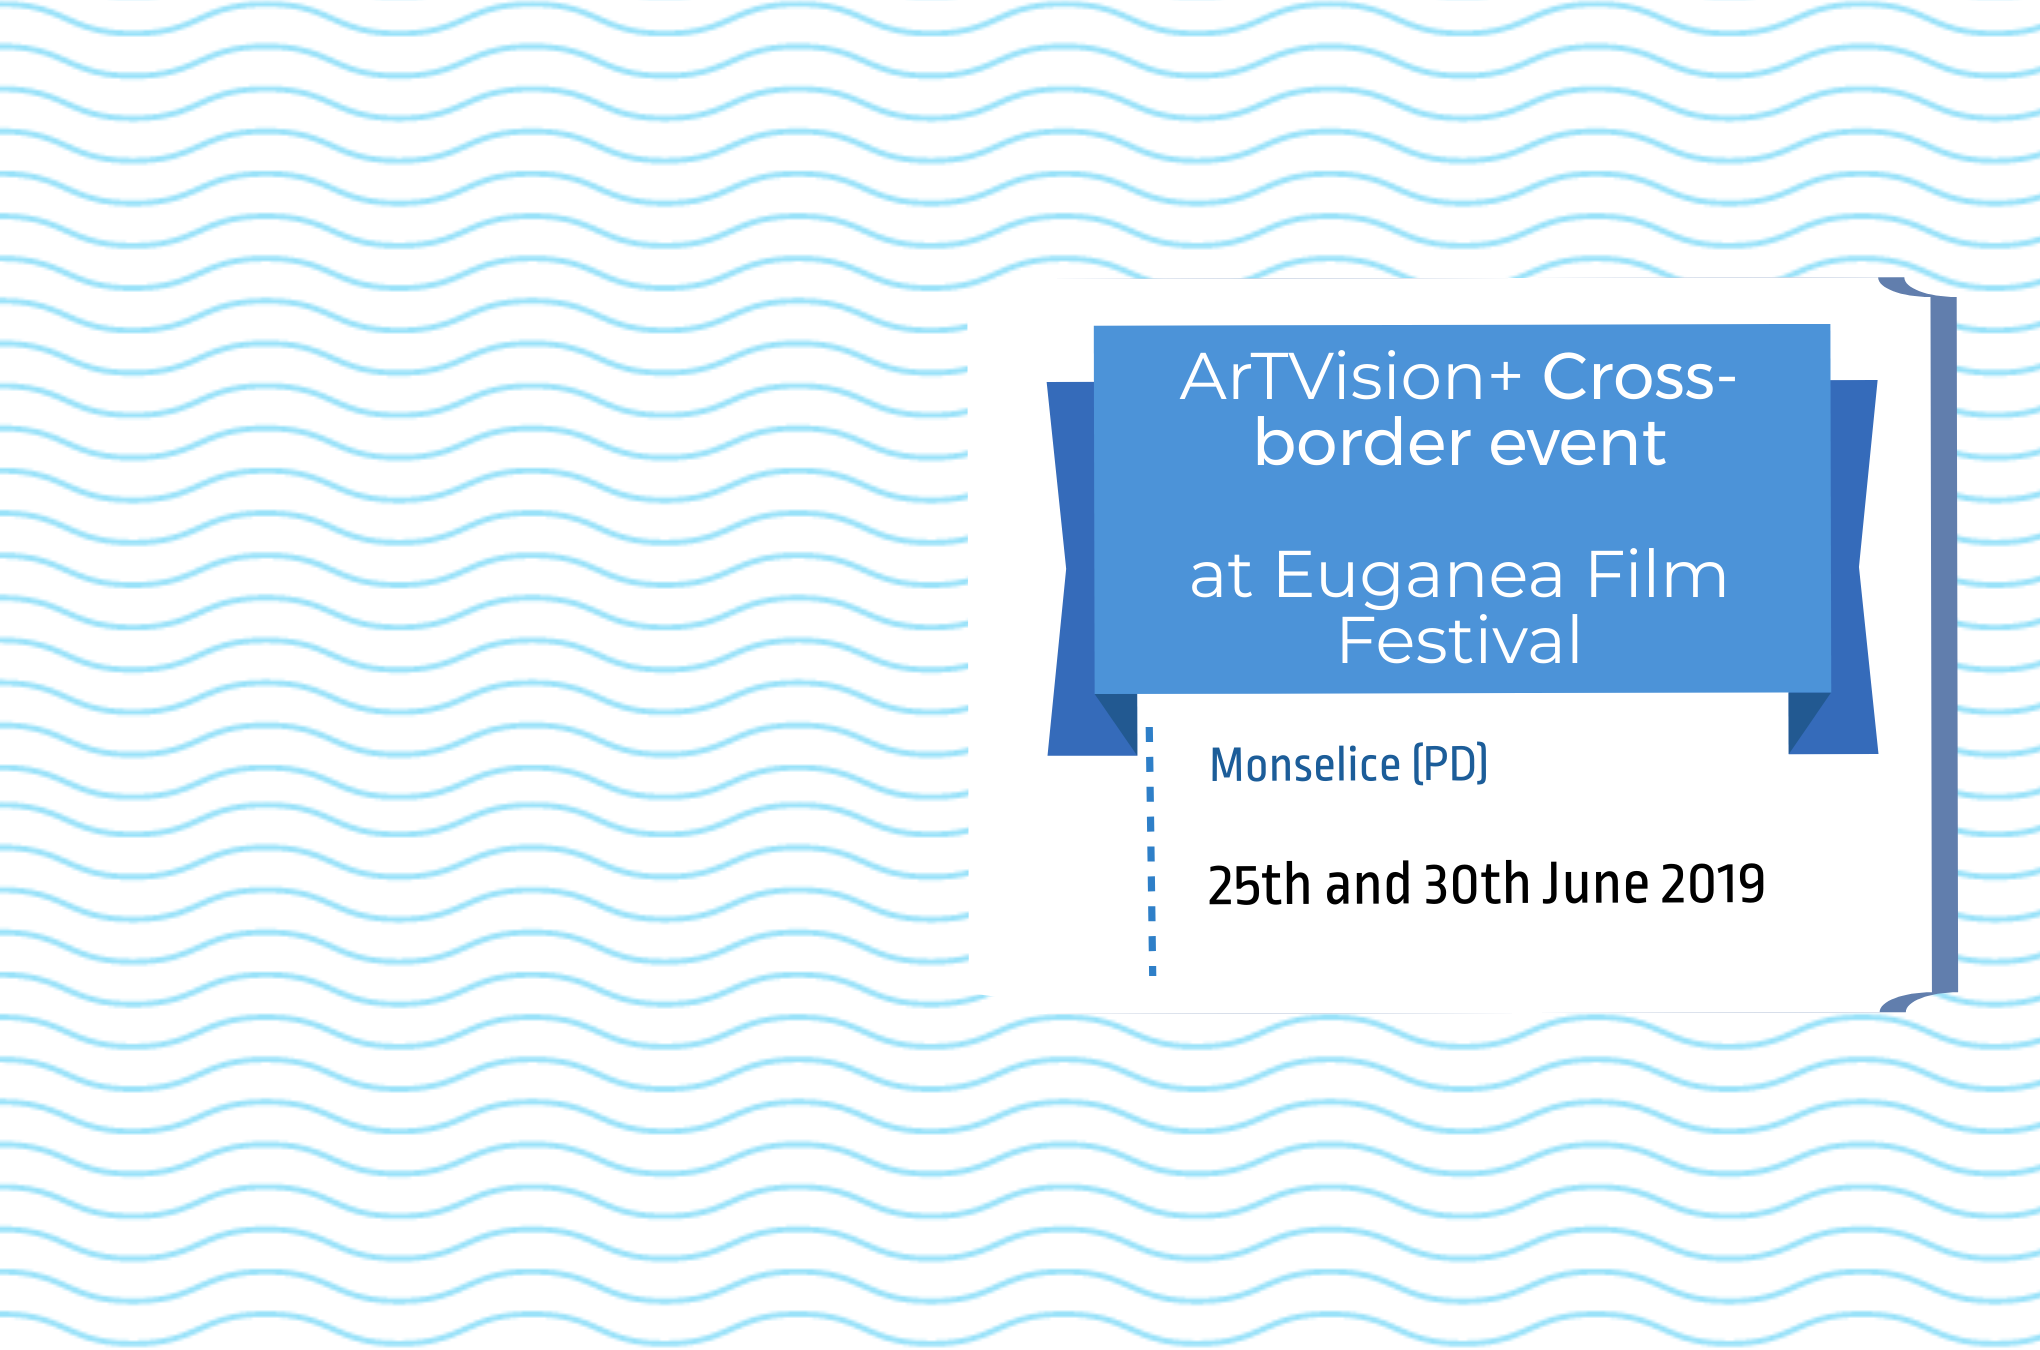 ARTVISION+ cross-border event in Veneto